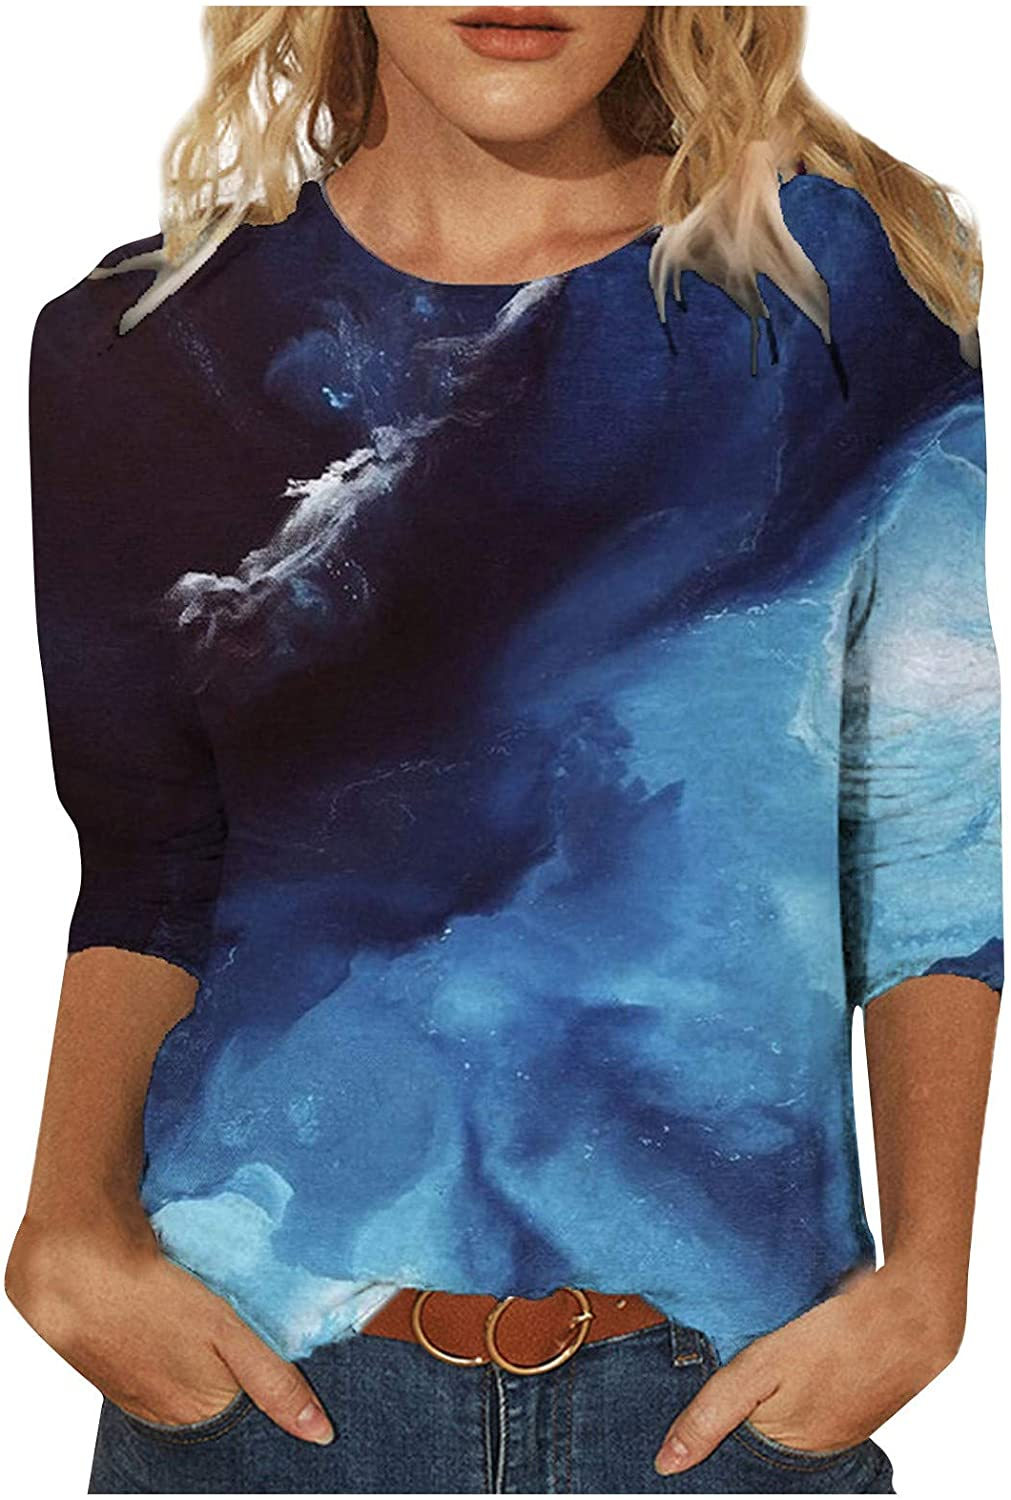 3/4 Sleeve Tops for Women Crewneck Tye Dye Tee Shirts Loose Summer Vintage Pullover Comfy Casual Plus Size Blouse